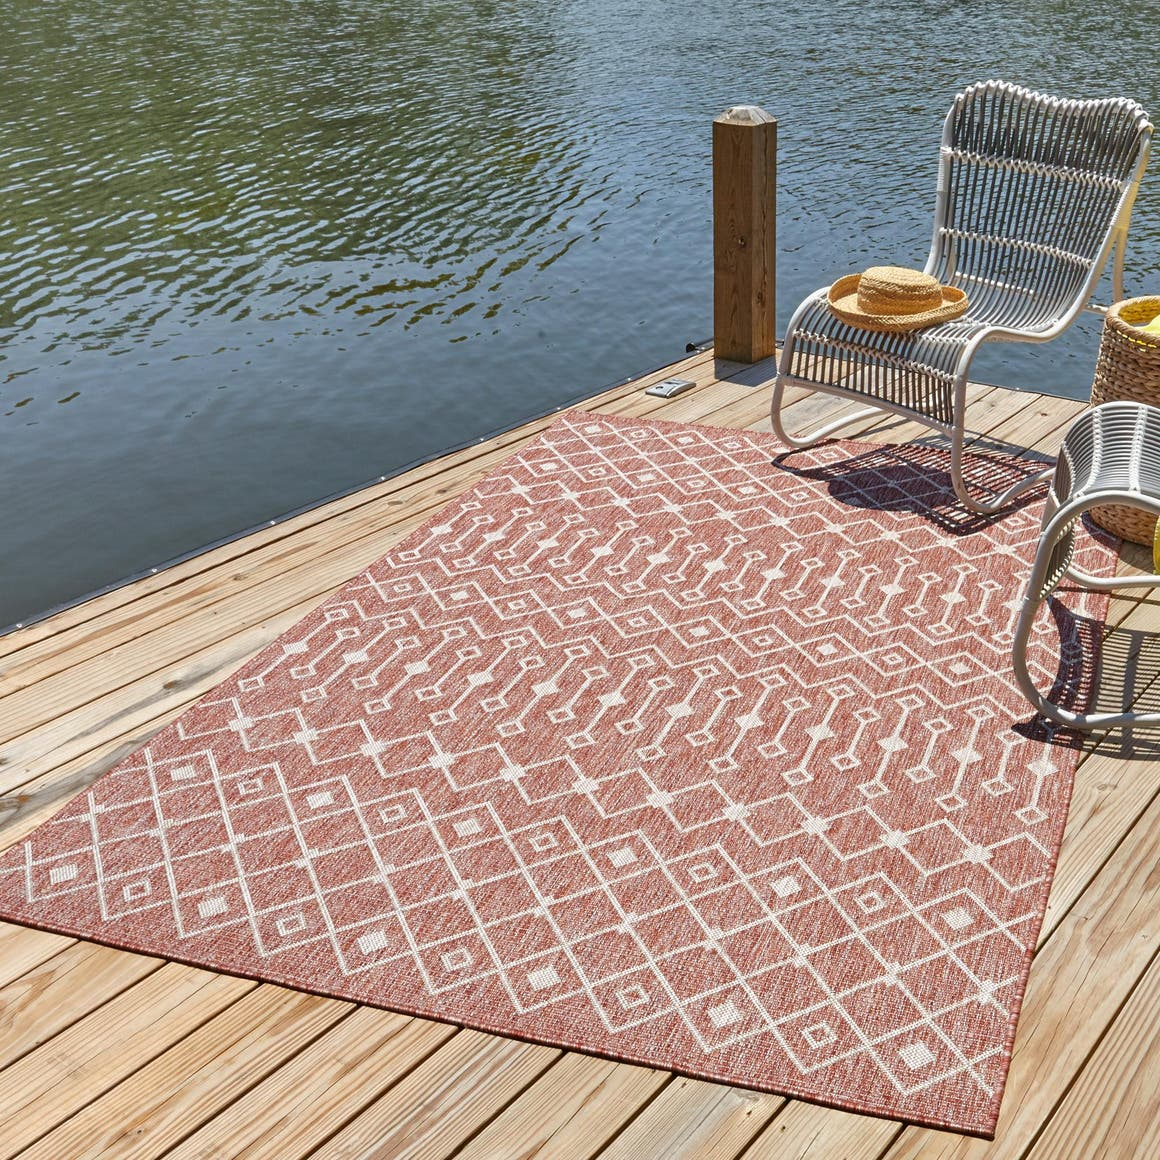 5' x 8' Outdoor Trellis Rug main image